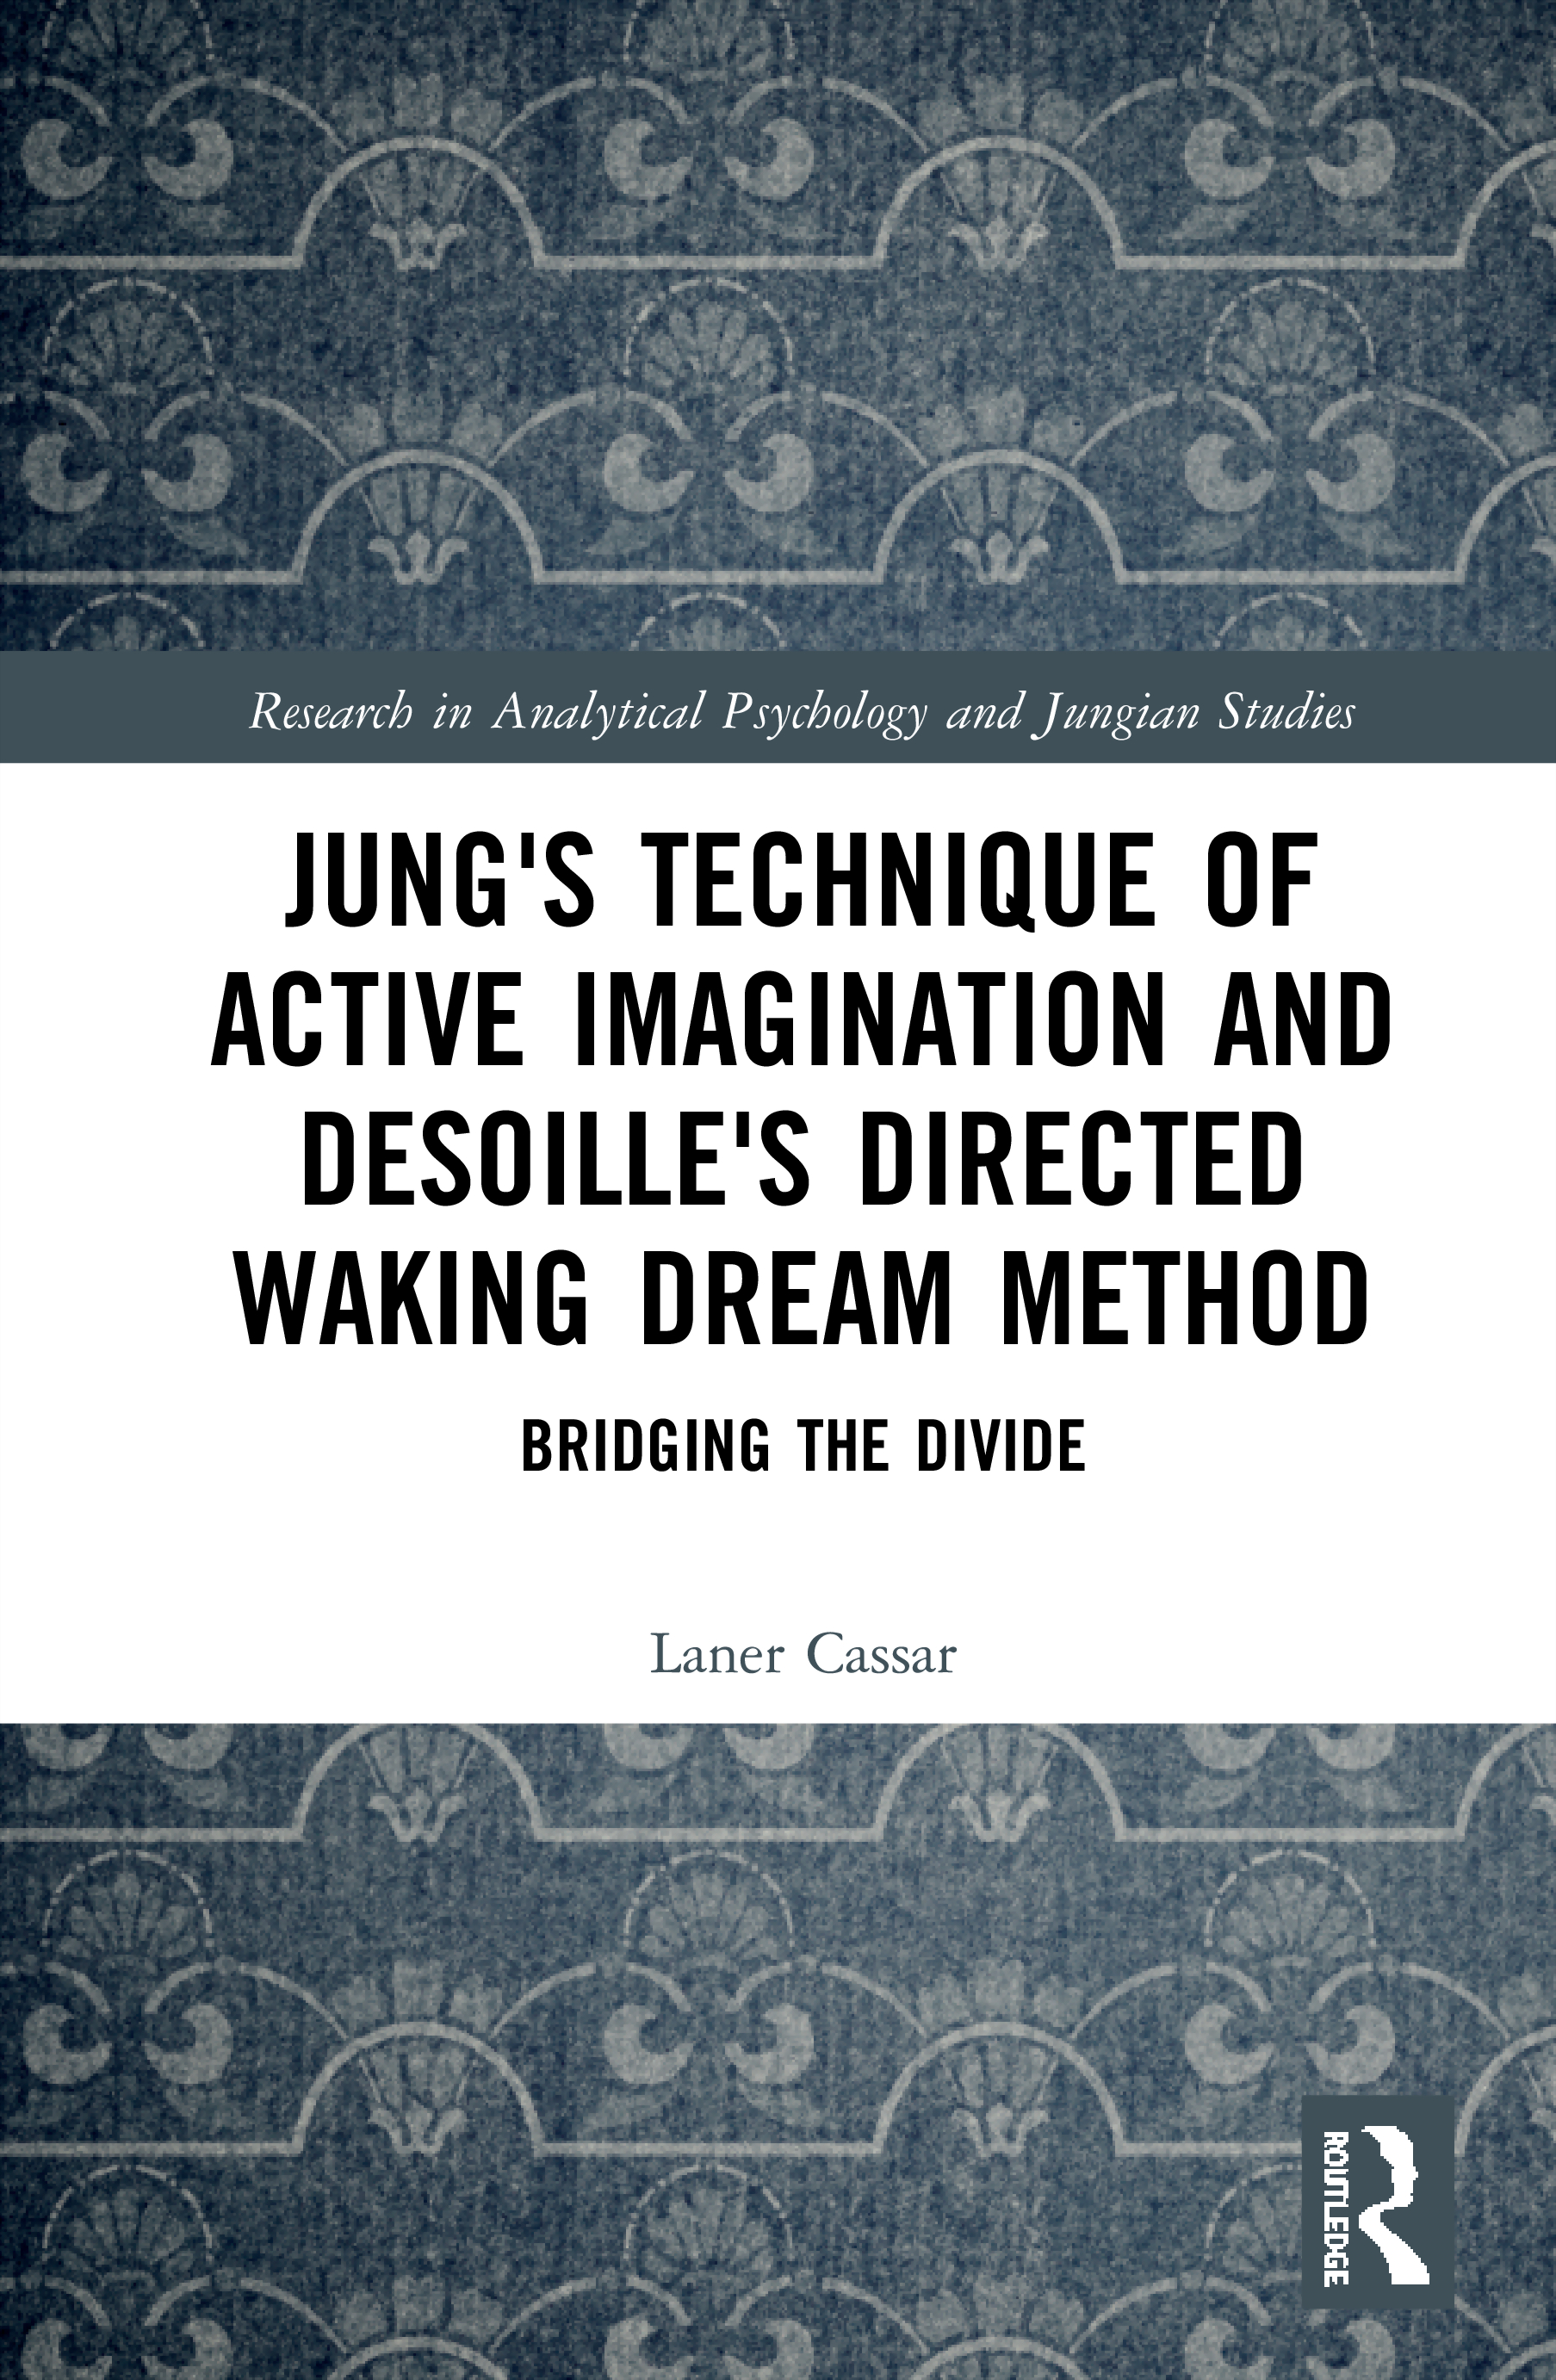 Jung's Technique of Active Imagination and Desoille's Directed Waking Dream Method: Bridging the Divide book cover